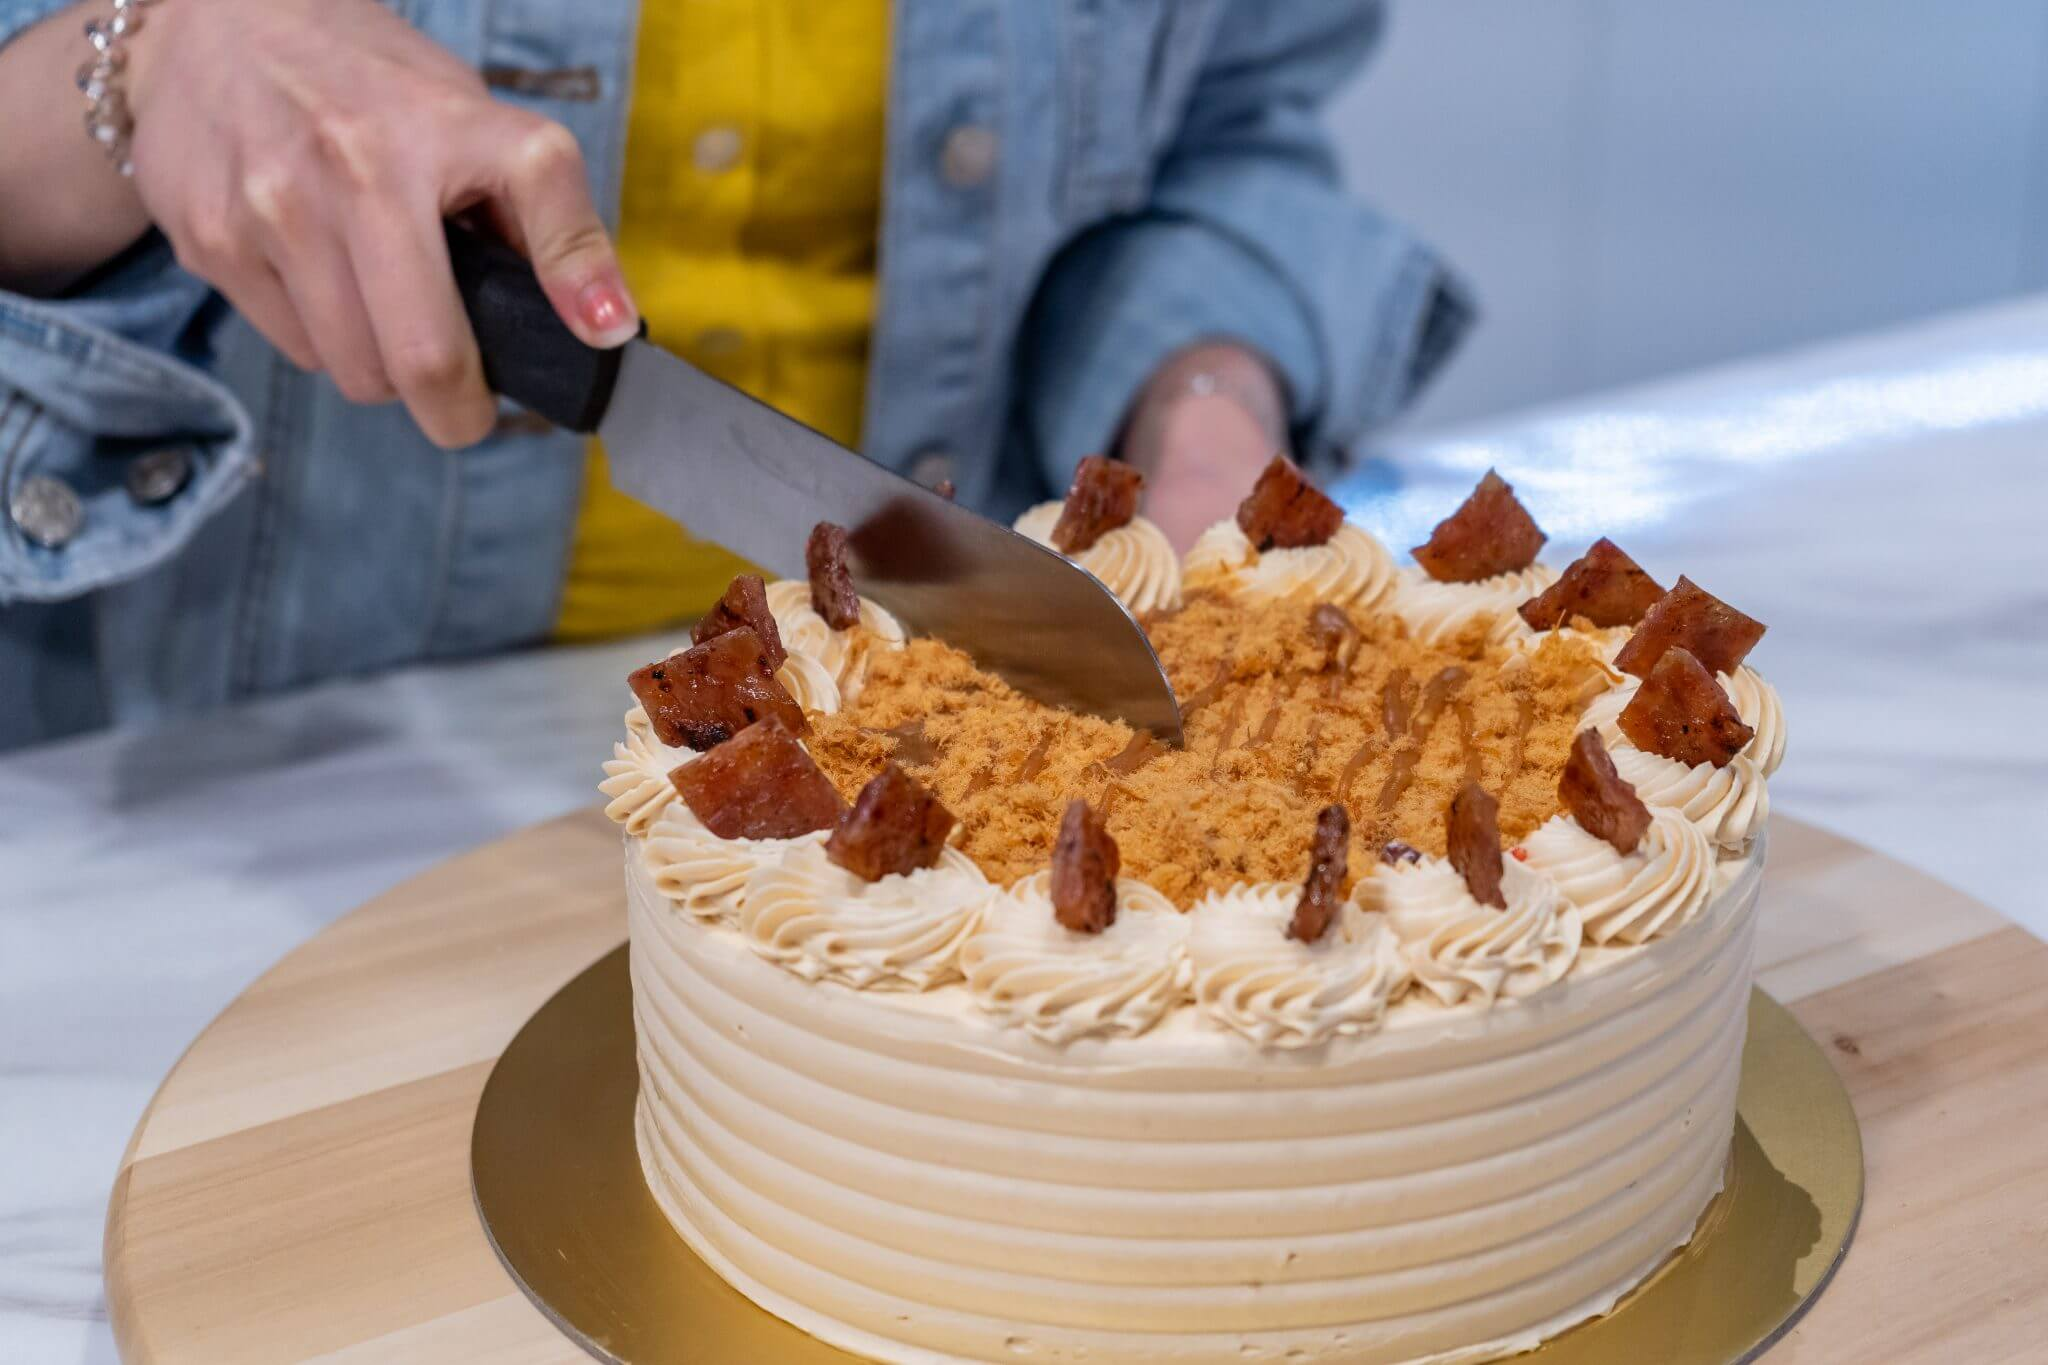 Cakerholic: Taking a slice of the cake